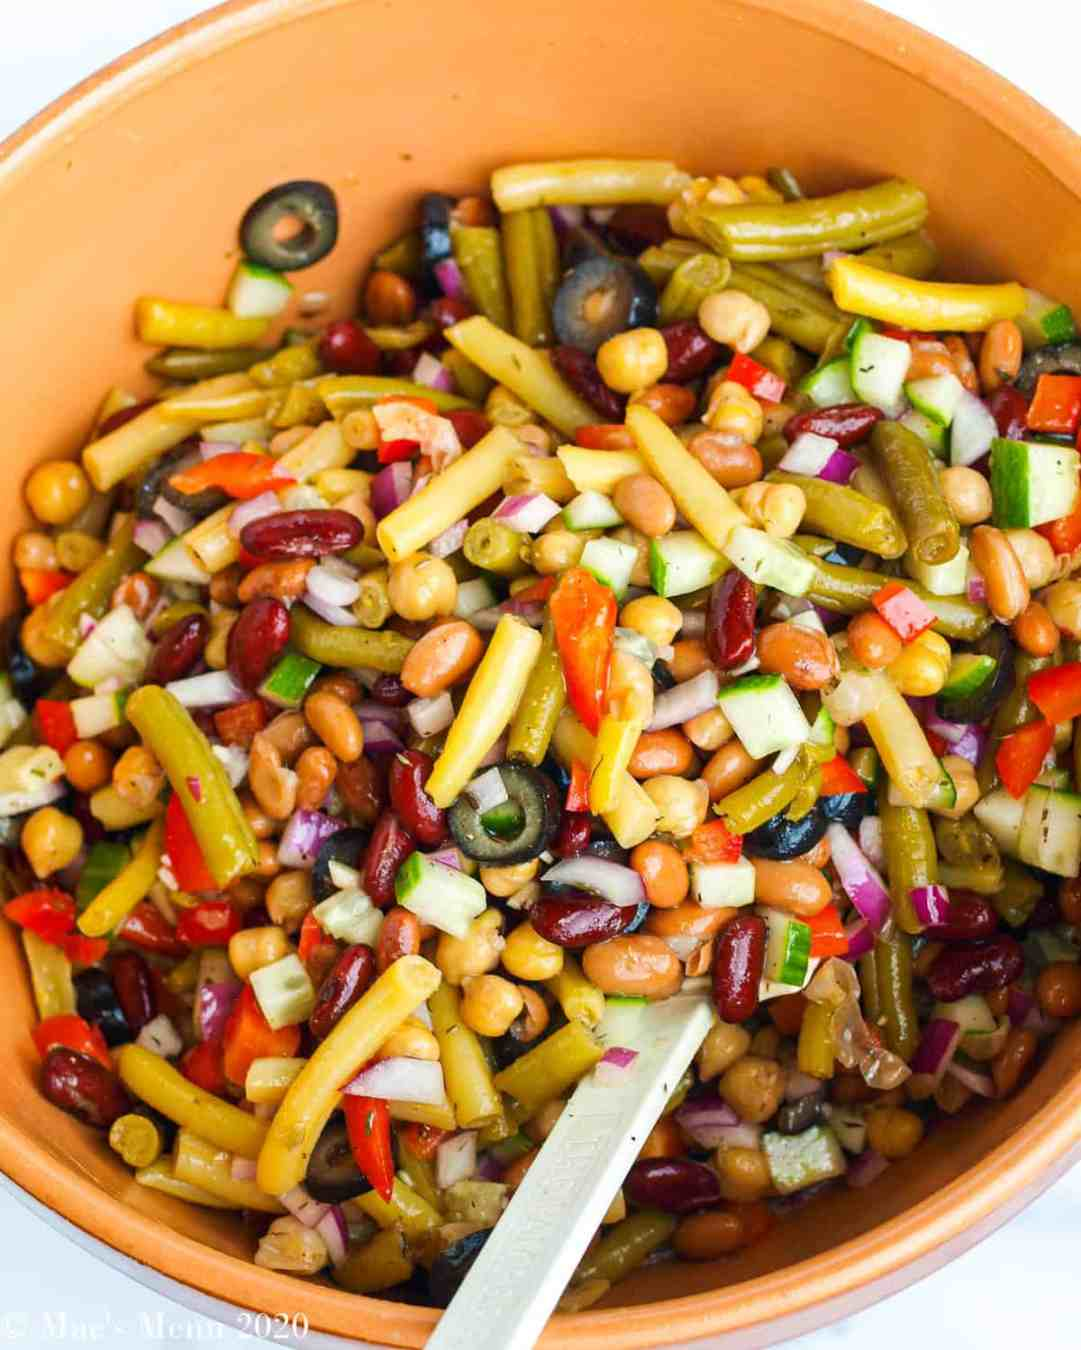 A large mixing bowl of 5 bean salad with a rubber spatula in it.